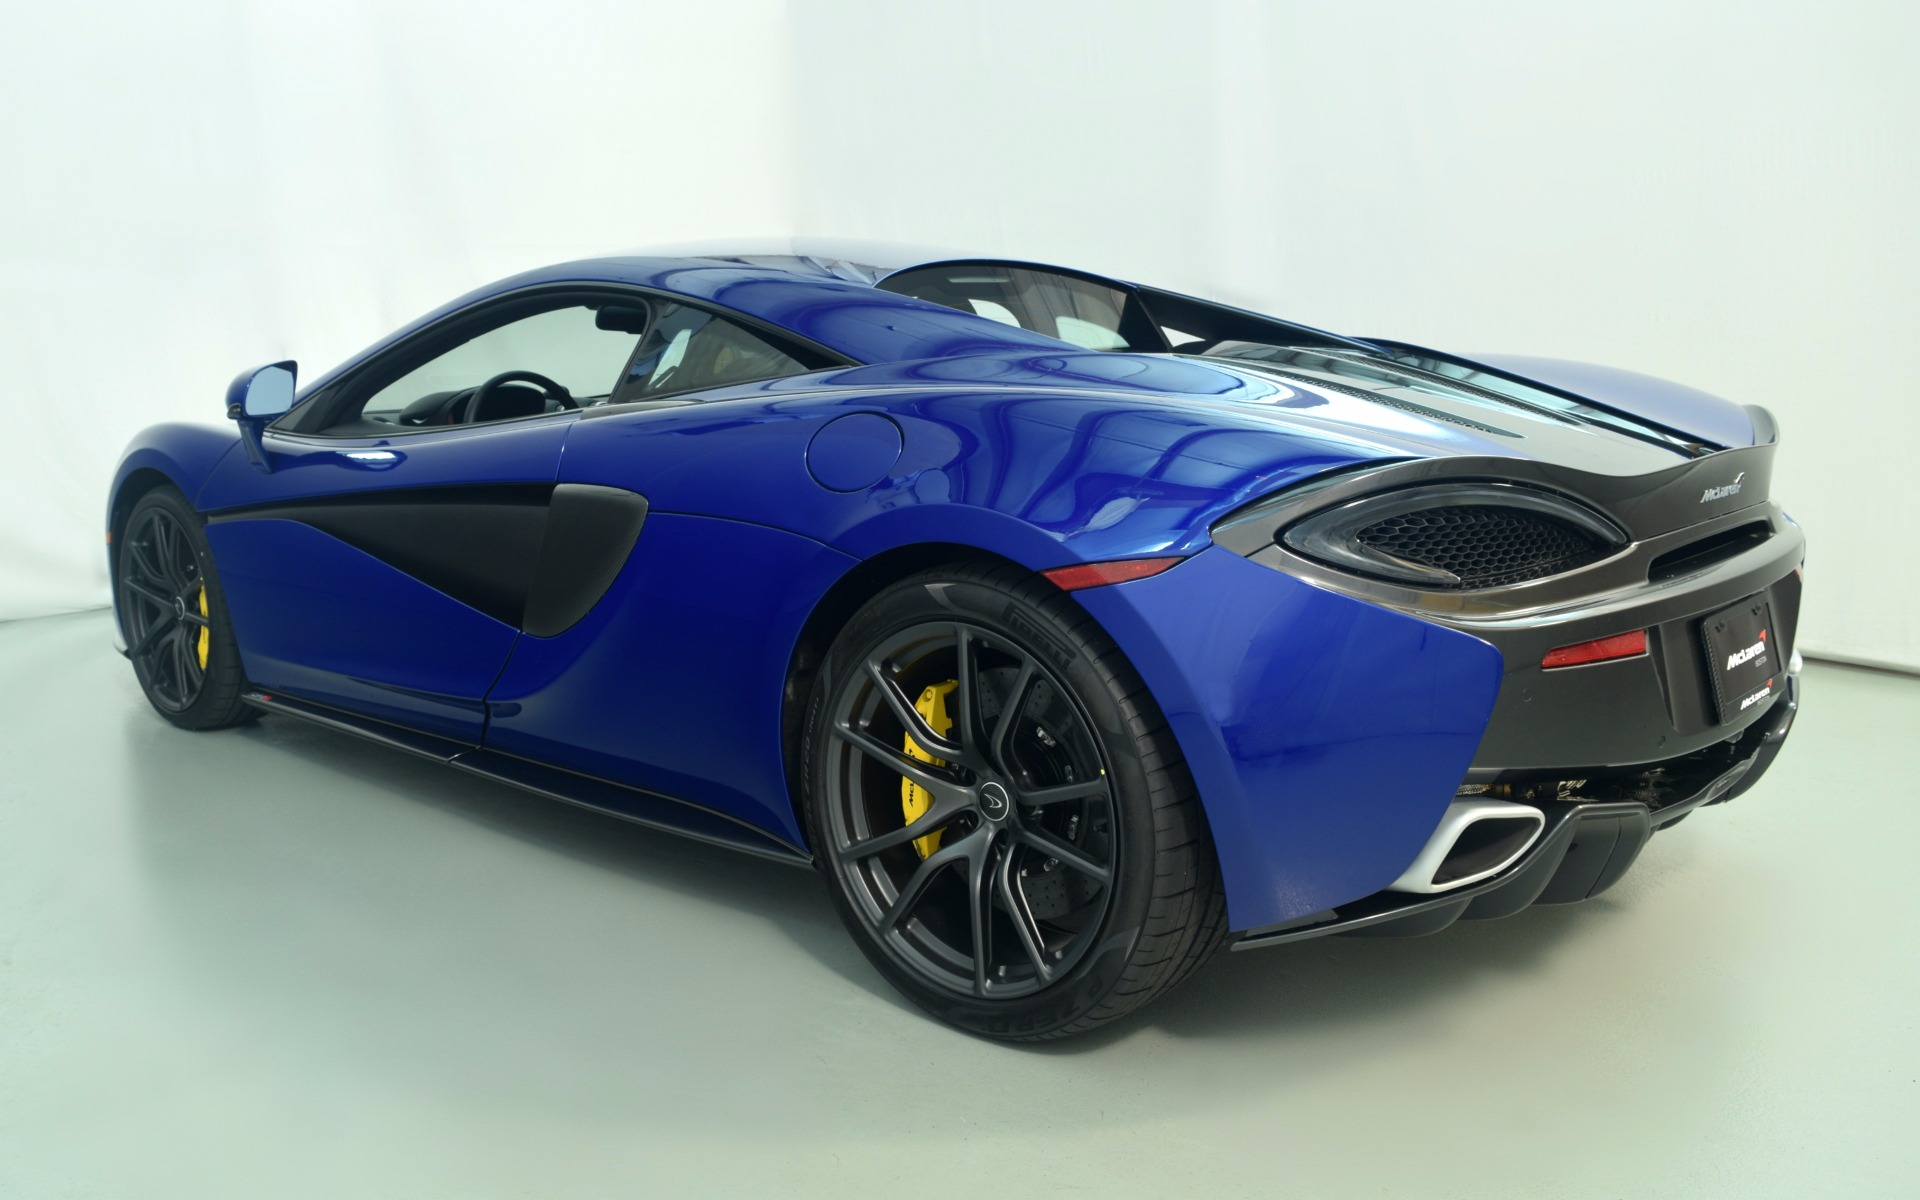 2016 McLaren 570S For Sale In Norwell, MA 000718